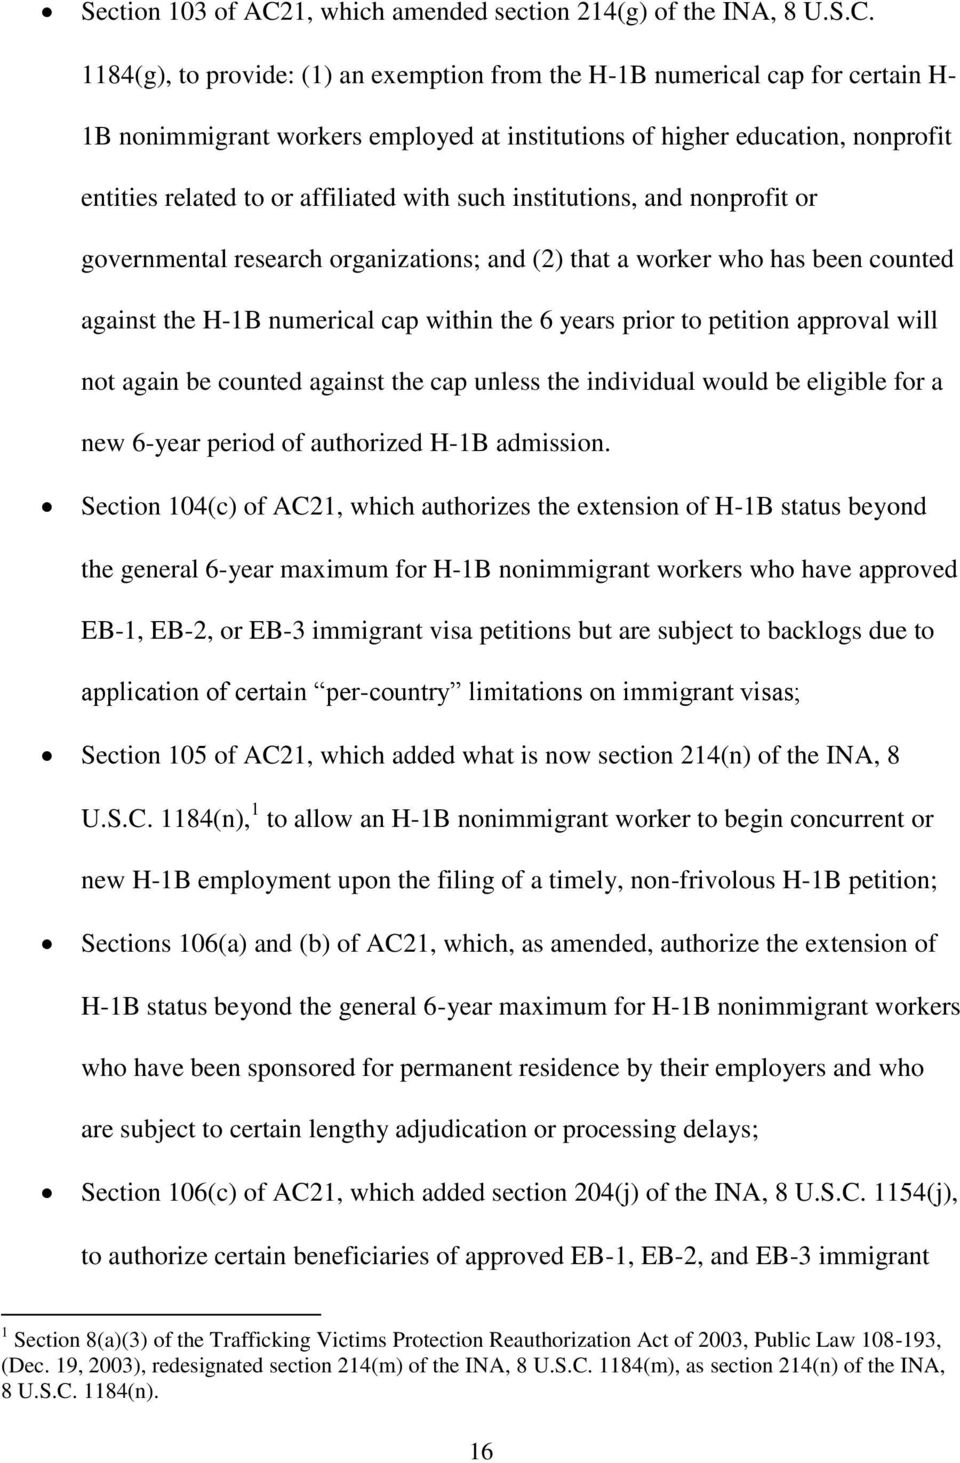 1184(g), to provide: (1) an exemption from the H-1B numerical cap for certain H- 1B nonimmigrant workers employed at institutions of higher education, nonprofit entities related to or affiliated with